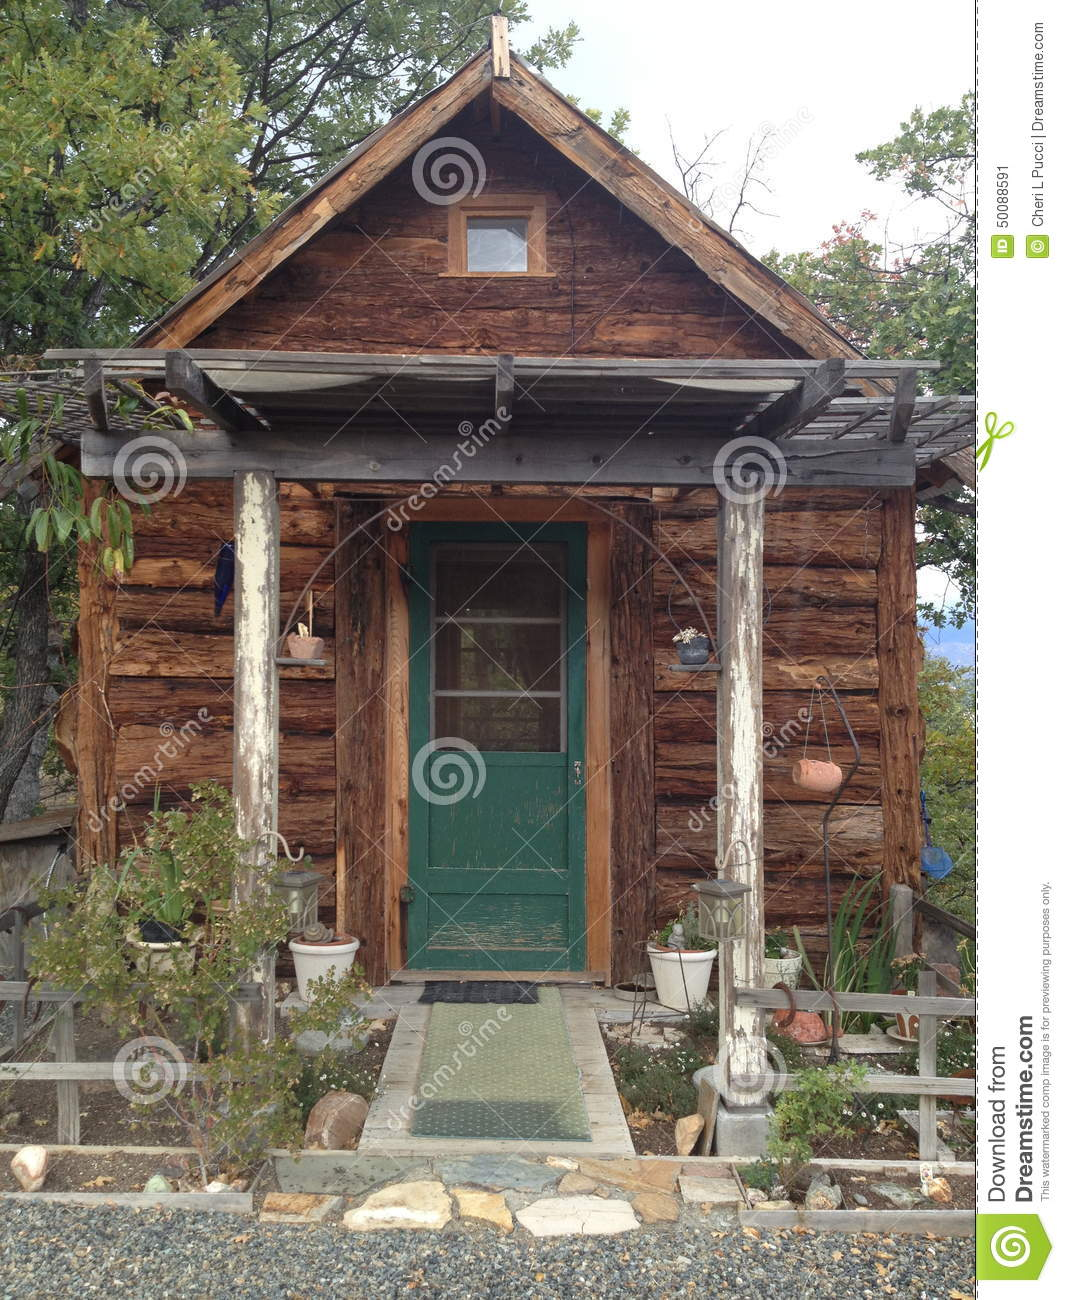 Image Result For Garden Window Prices